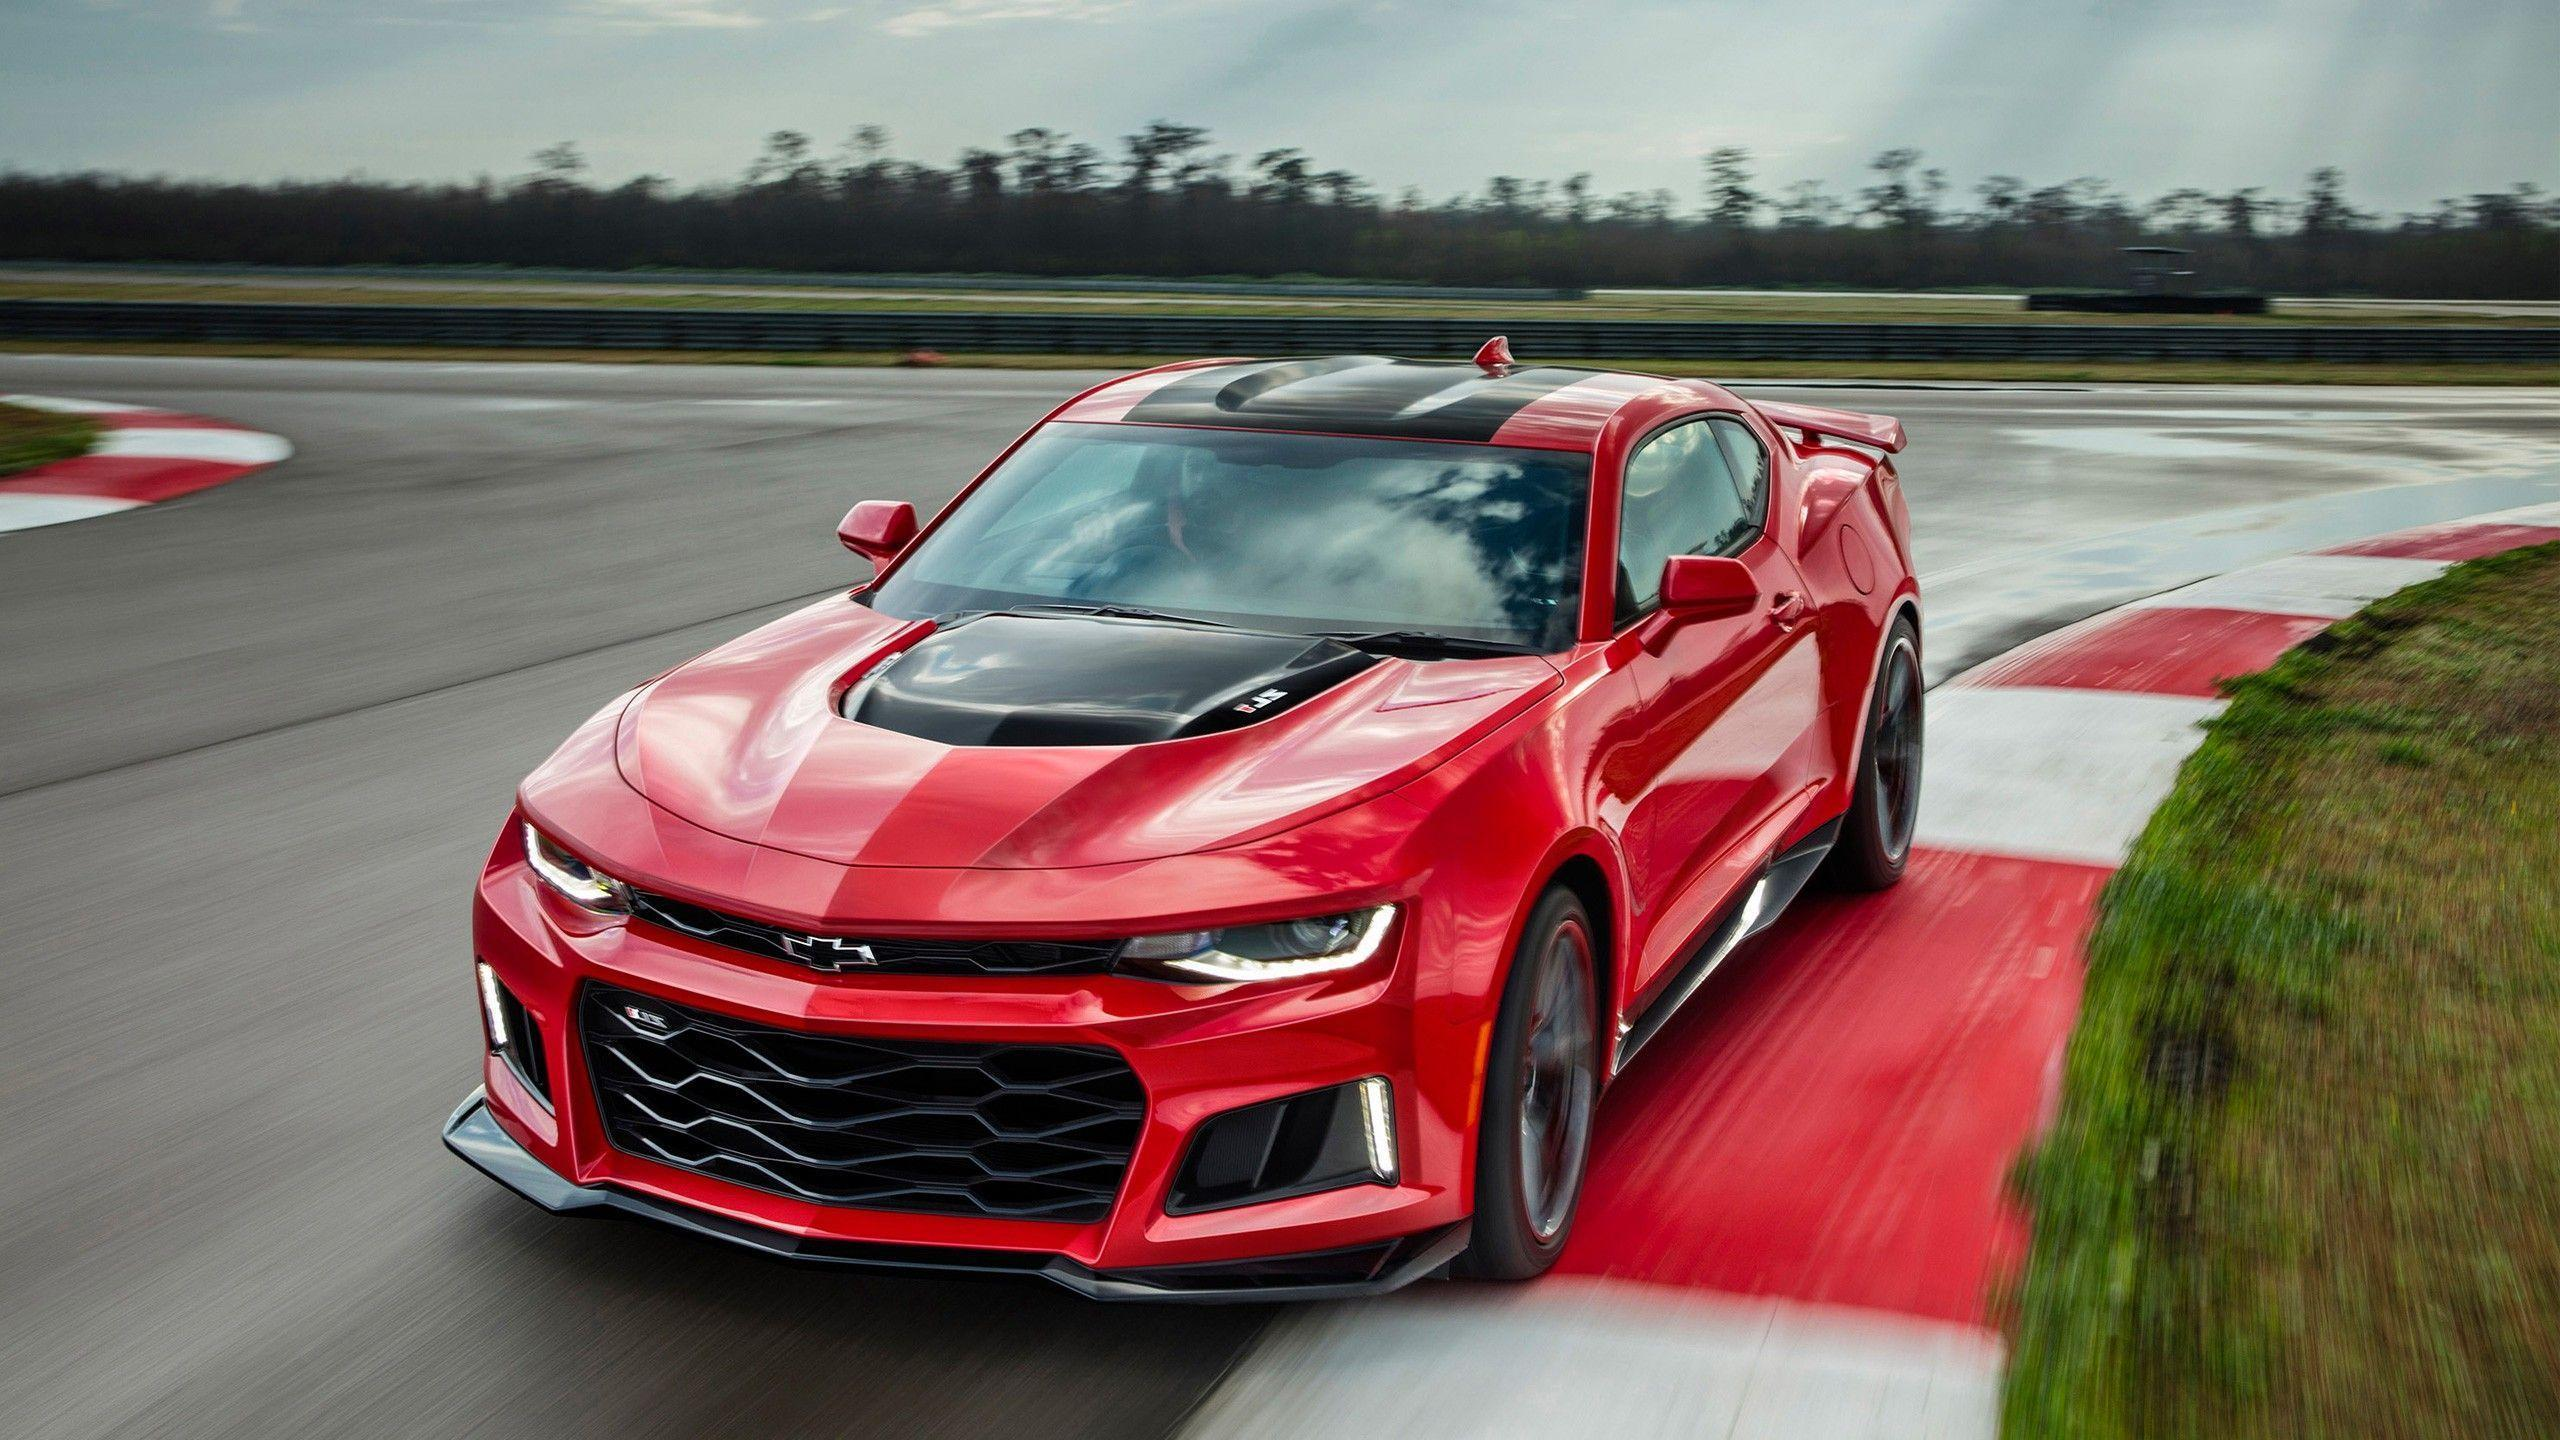 2016 Camaro Zl1 Wallpapers Wallpaper Cave